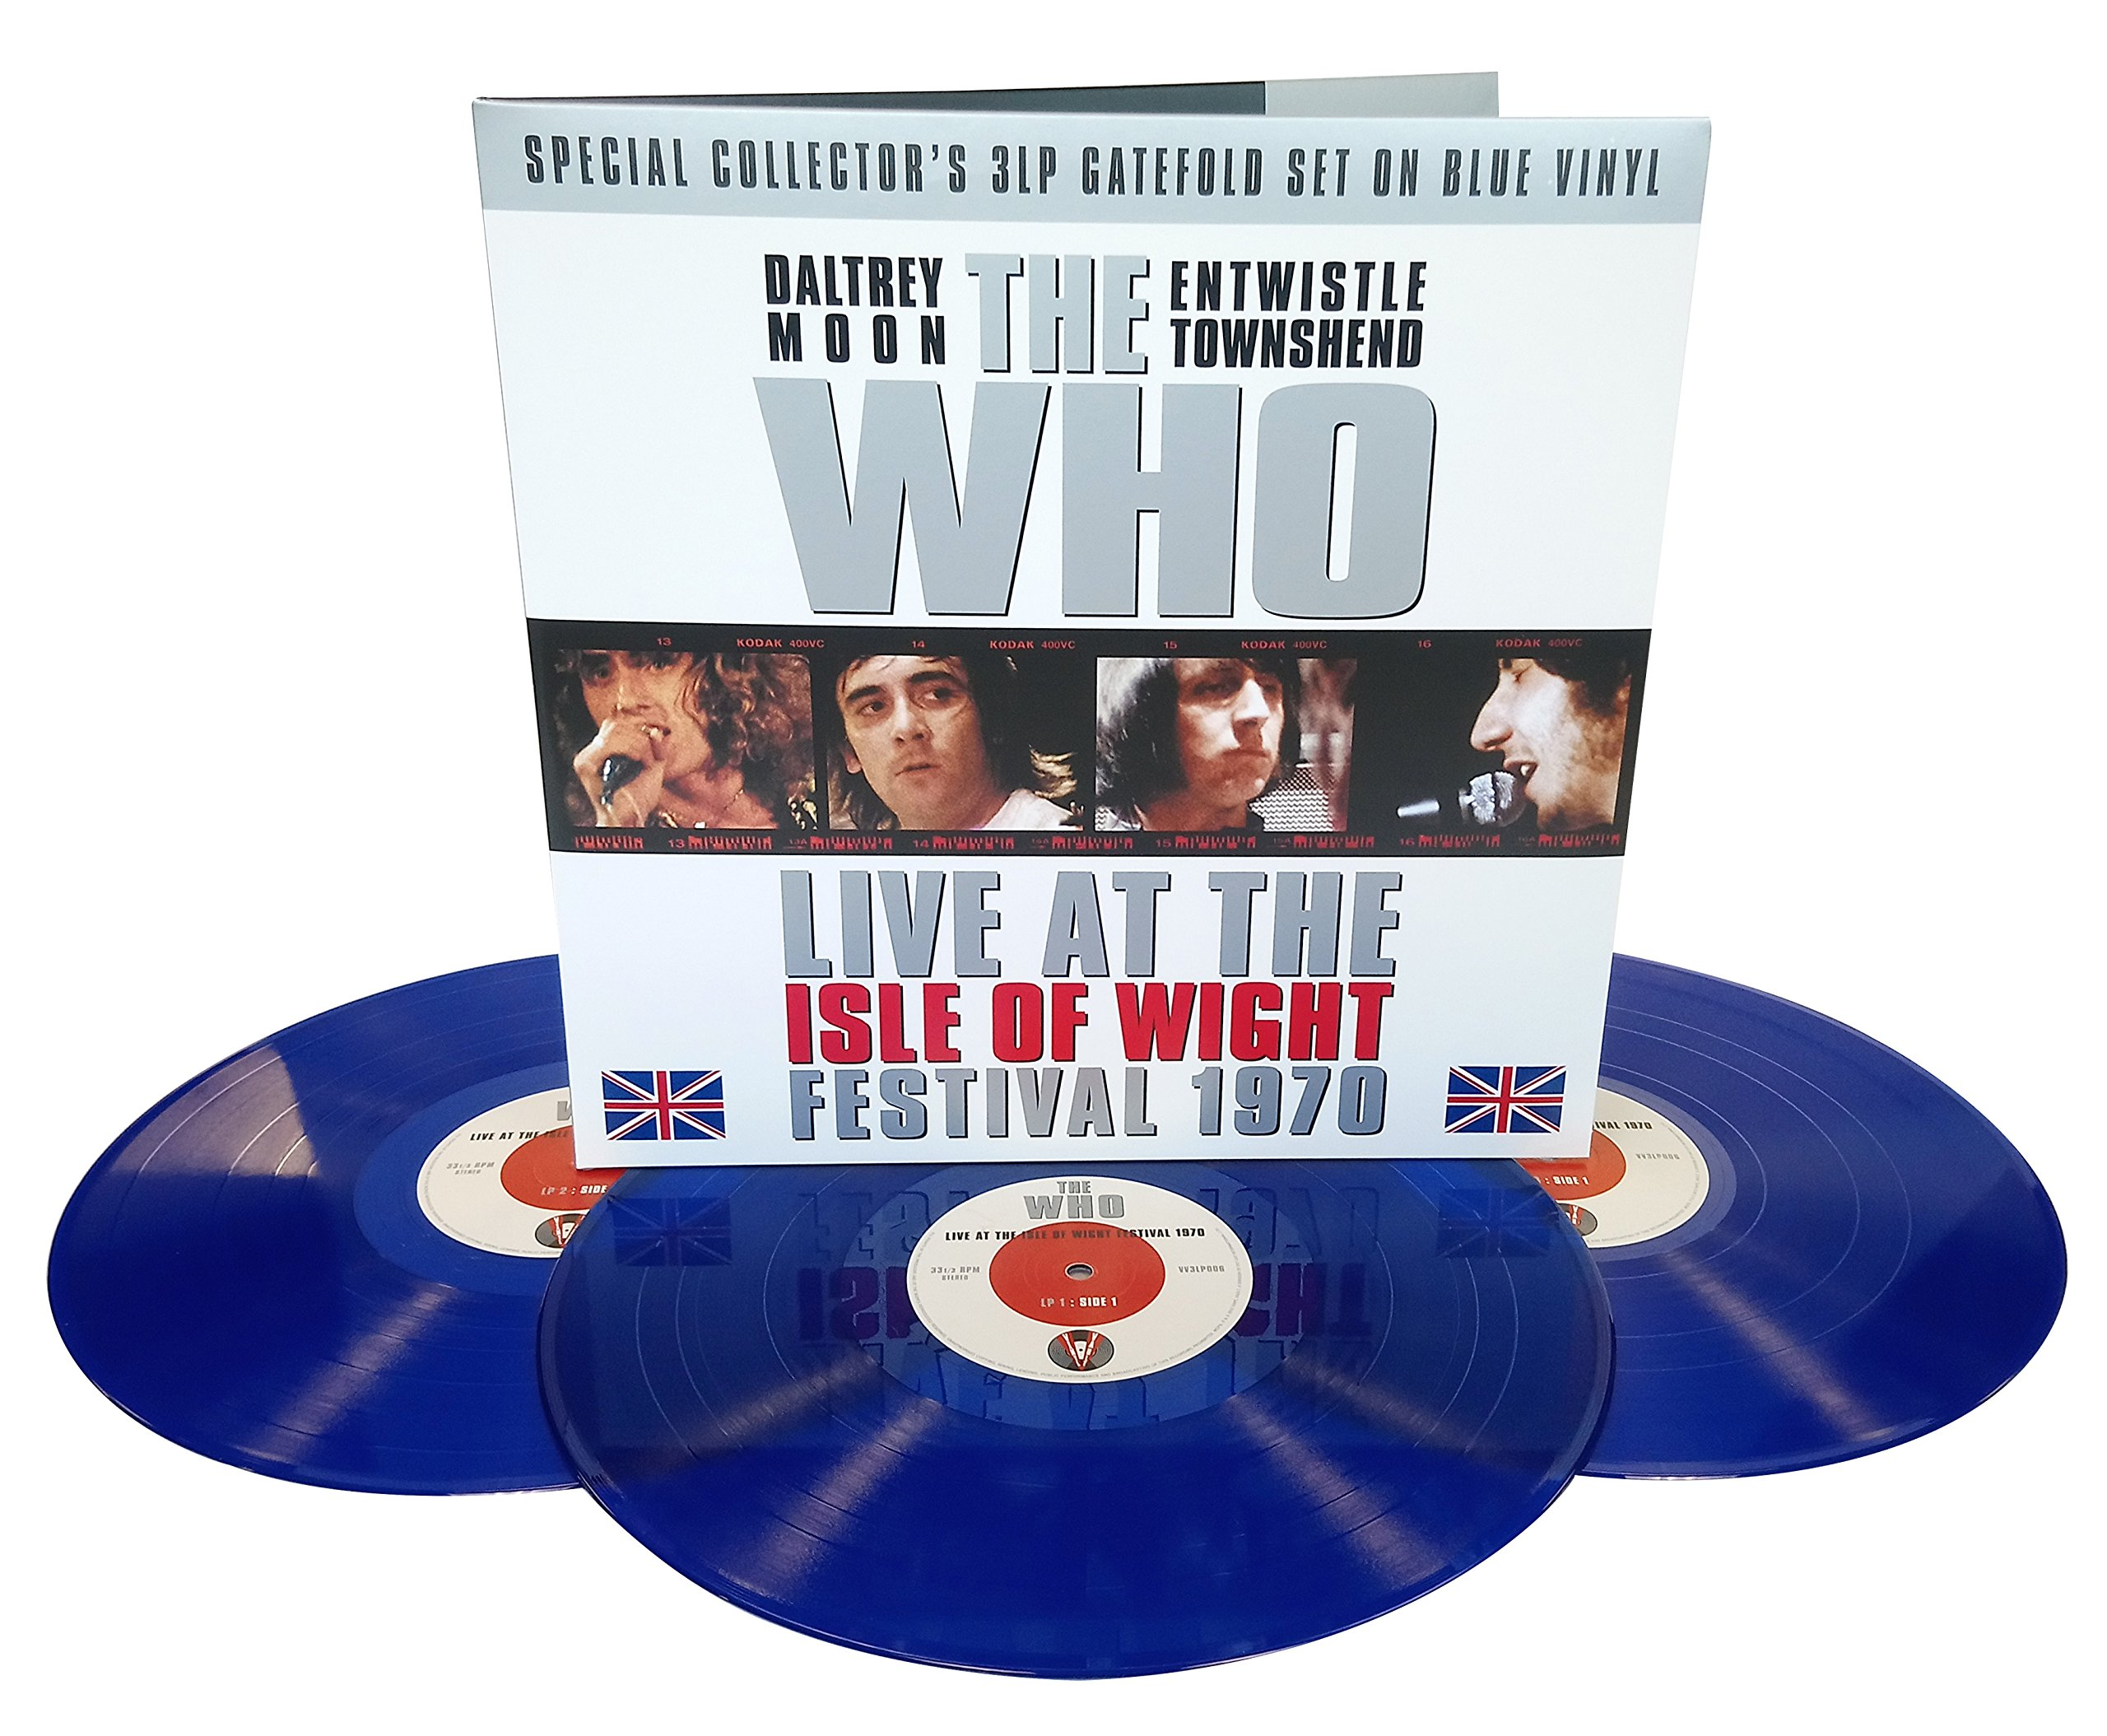 Isle Of Wight Festival 1970 (3LP Gatefold 180g Vinyl) - The Who by VINYL